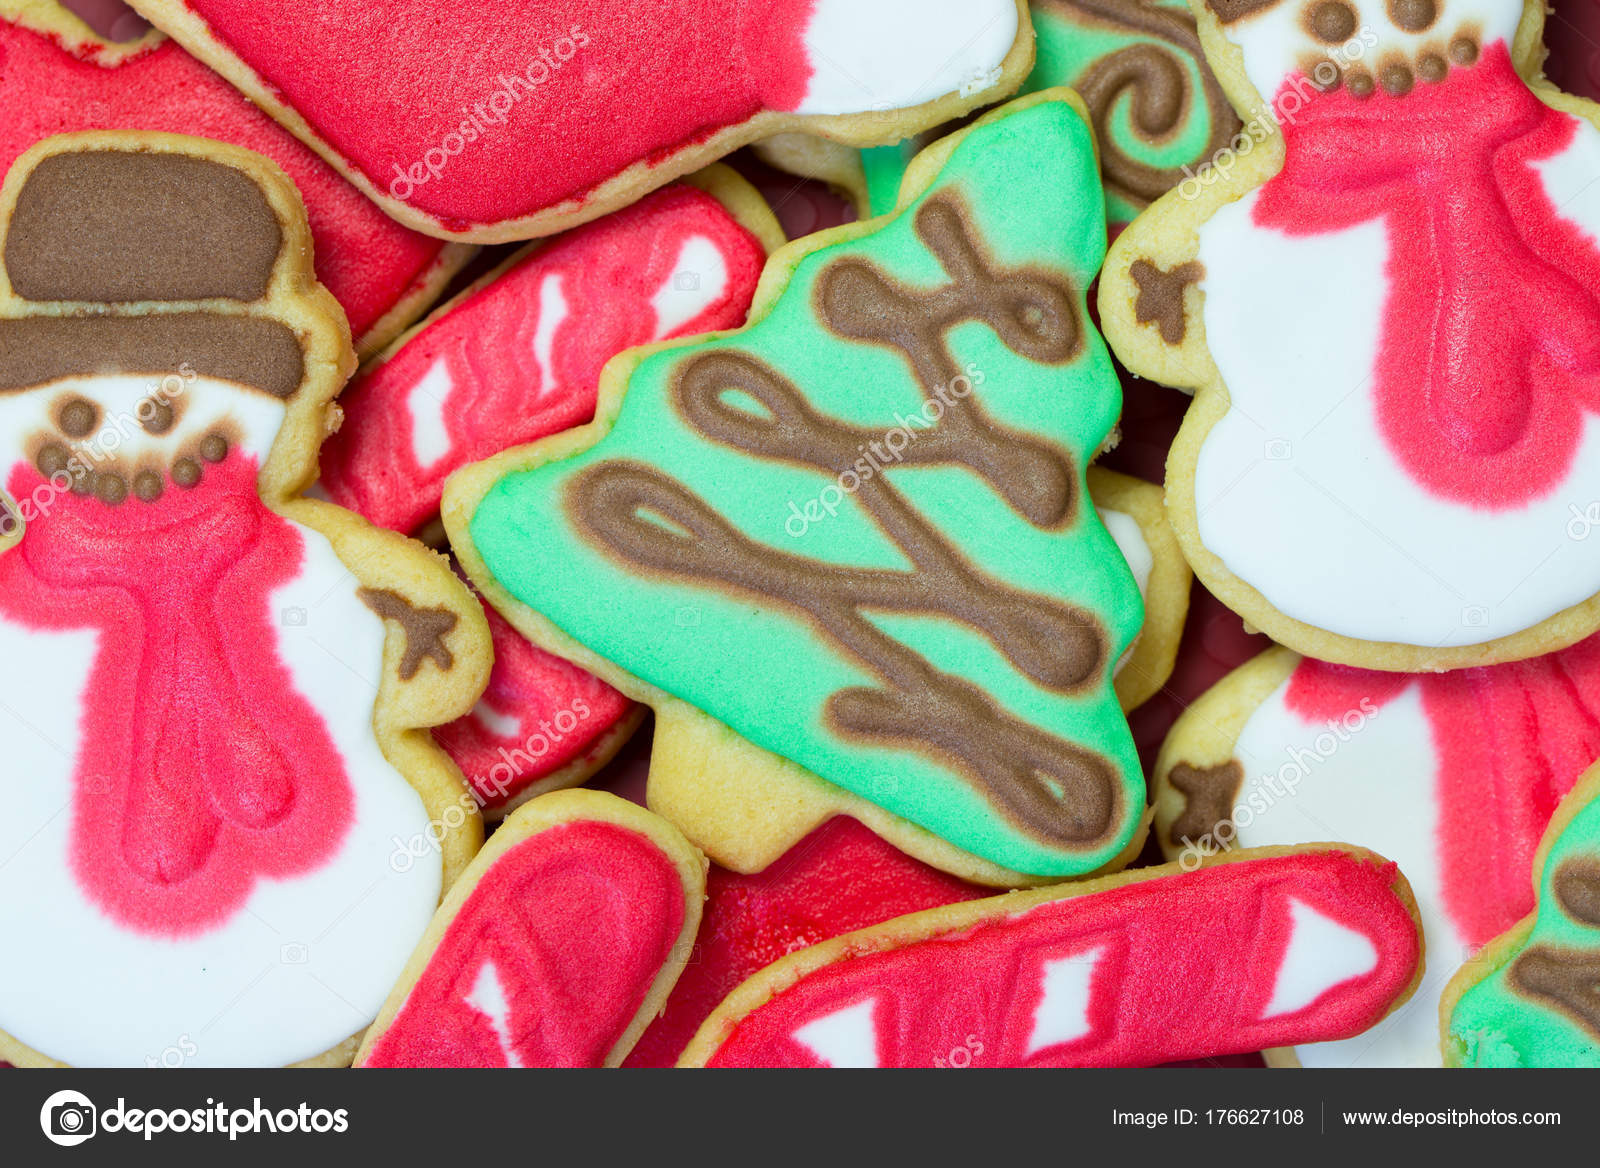 Christmas Cookies Royal Icing.Christmas Cookies Decorated With Royal Icing Stock Photo